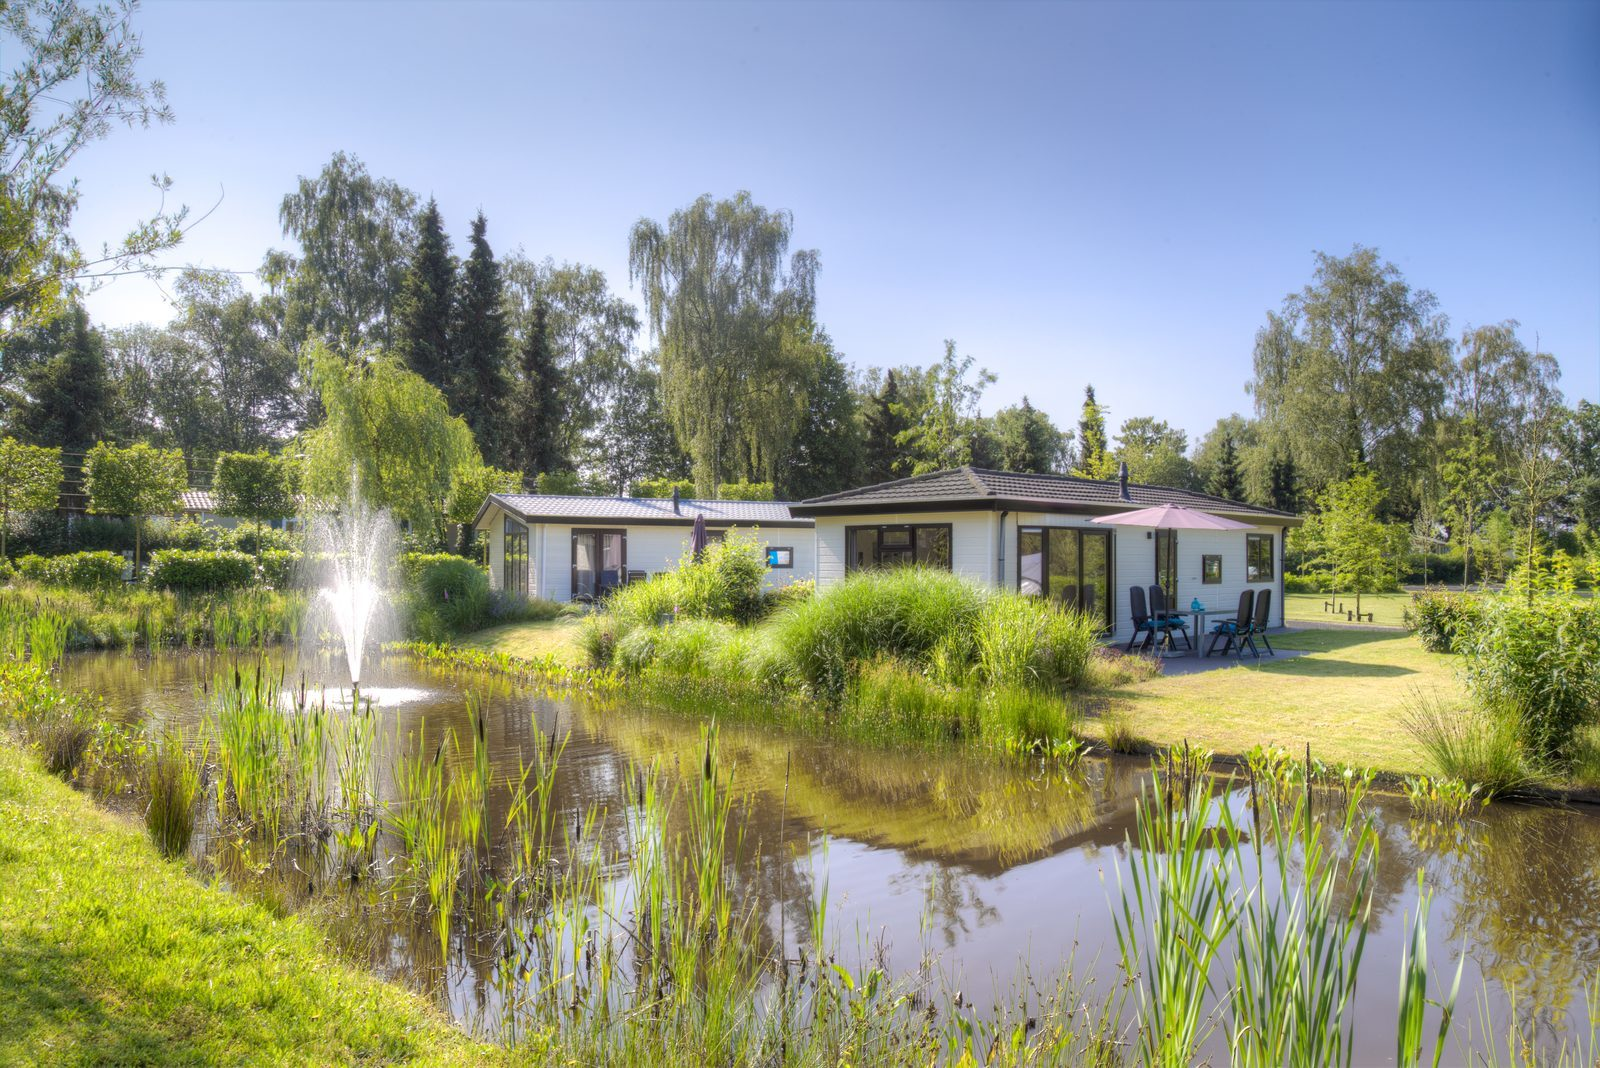 Holiday accommodations for sale at Holiday Park De Wielerbaan